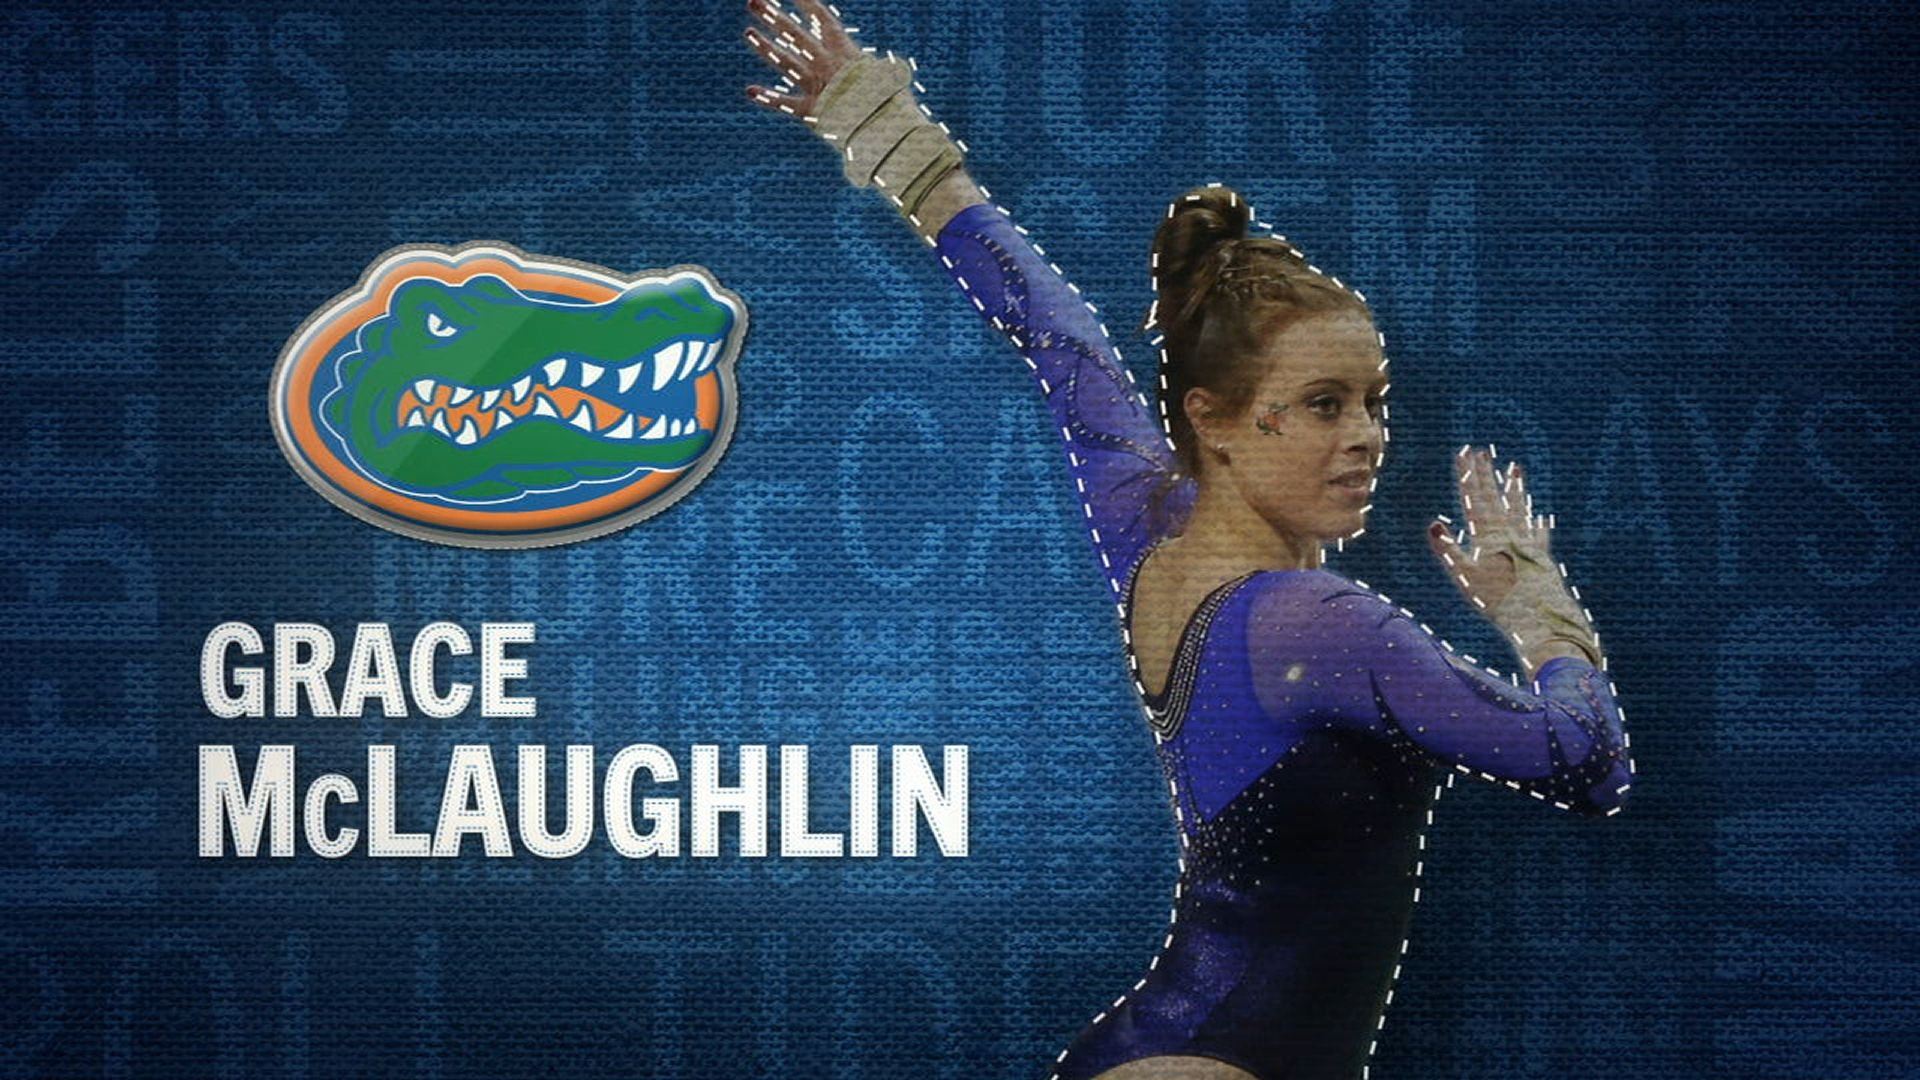 I am the SEC: Florida's Grace McLaughlin